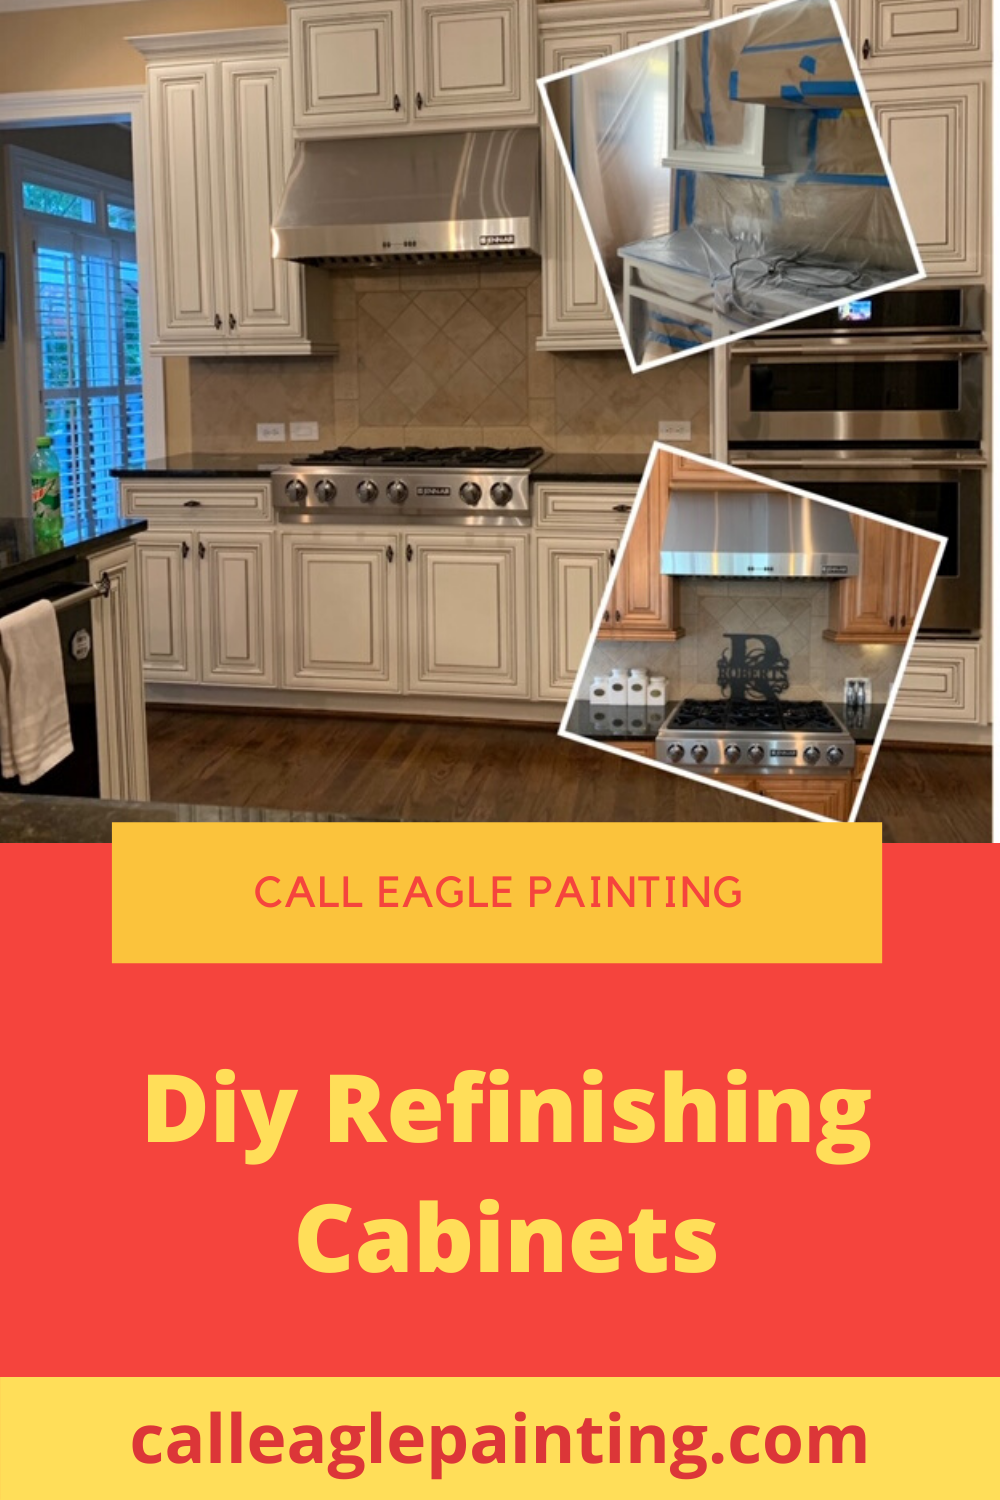 Diy Refinishing Cabinets Kitchen Cabinet Molding Kitchen Set Cabinet Refinishing Cabinets